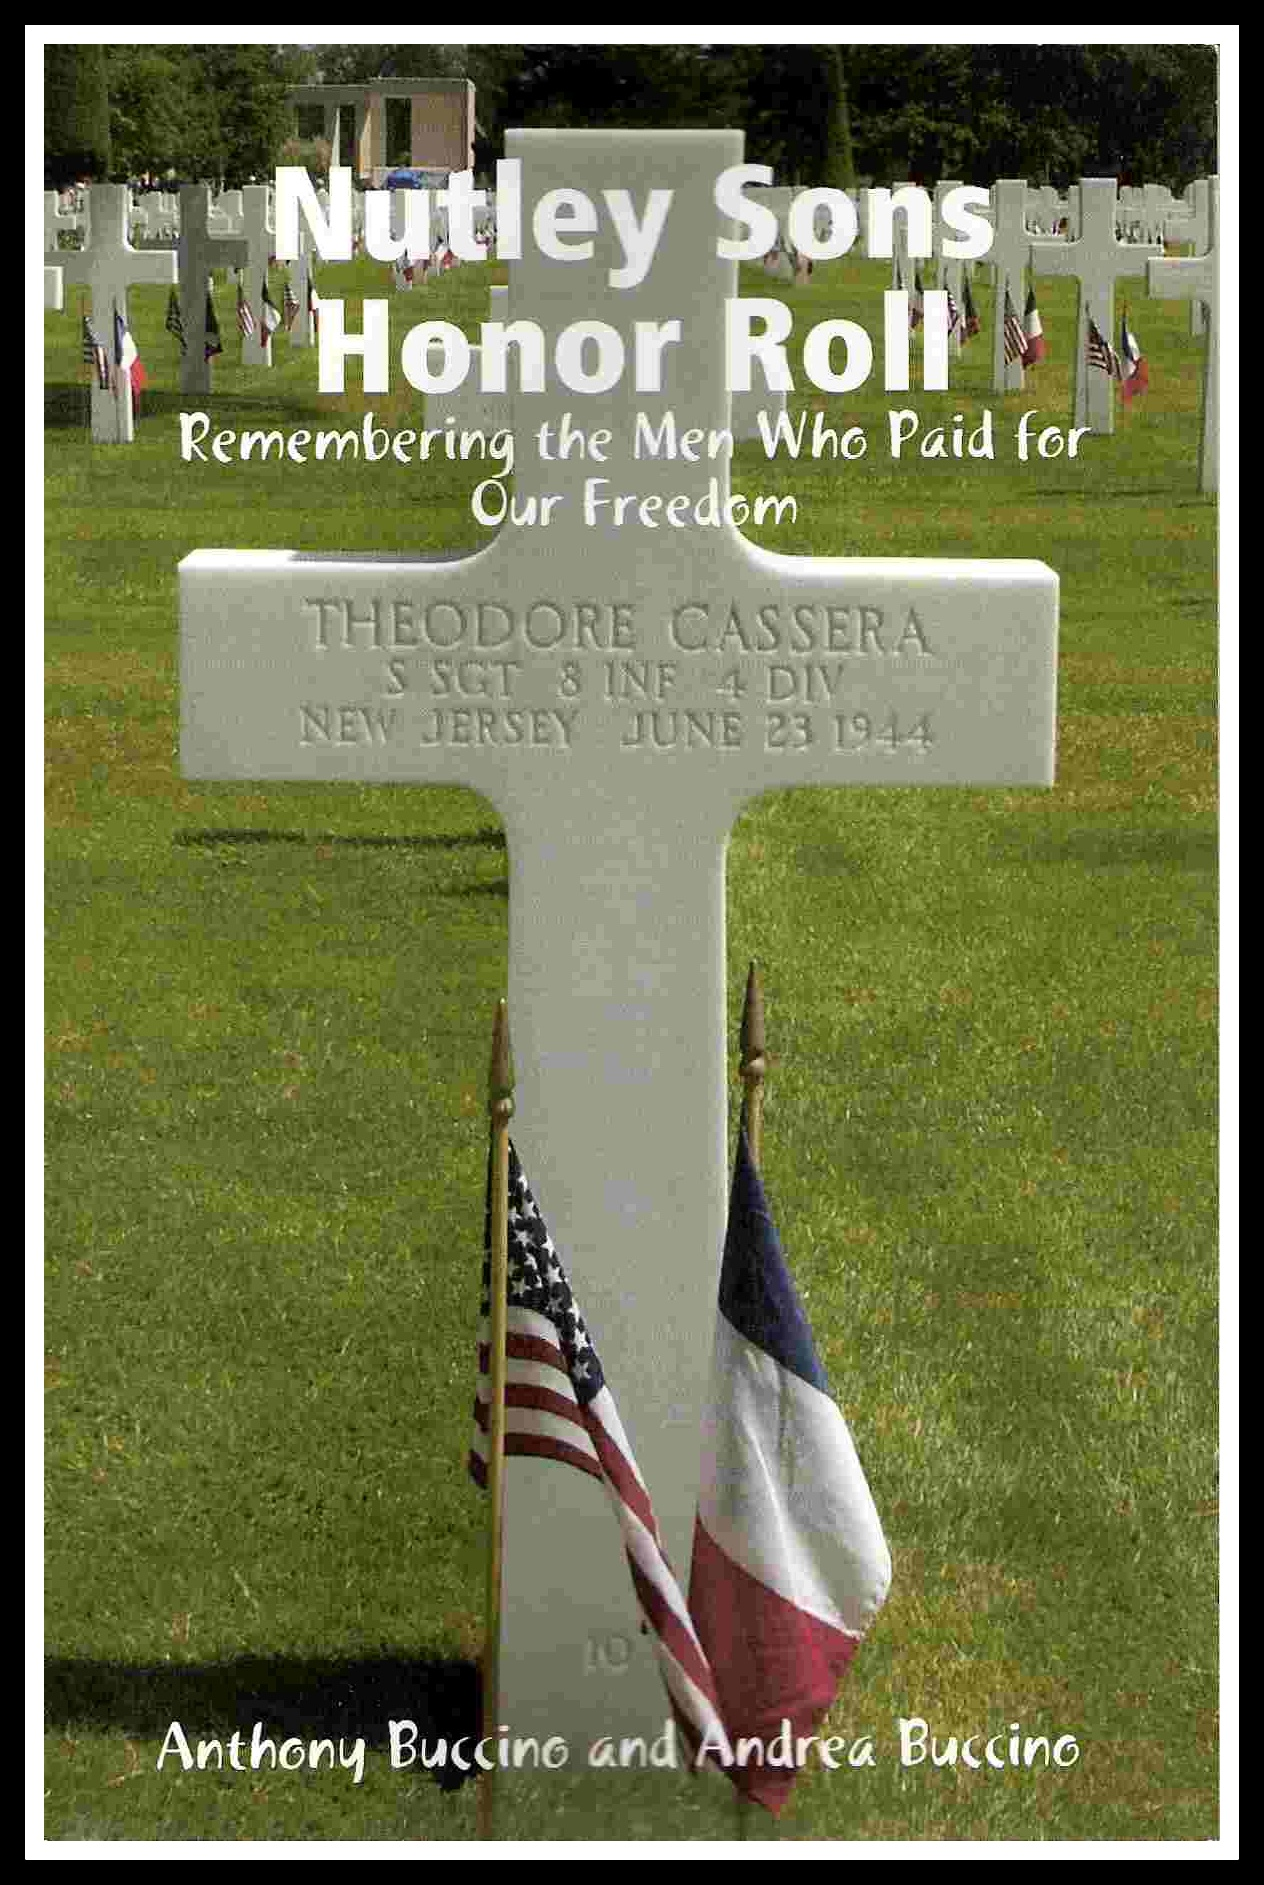 NUTLEY SONS HONOR ROLL Remembering the Men Who Paid For Our Freedom